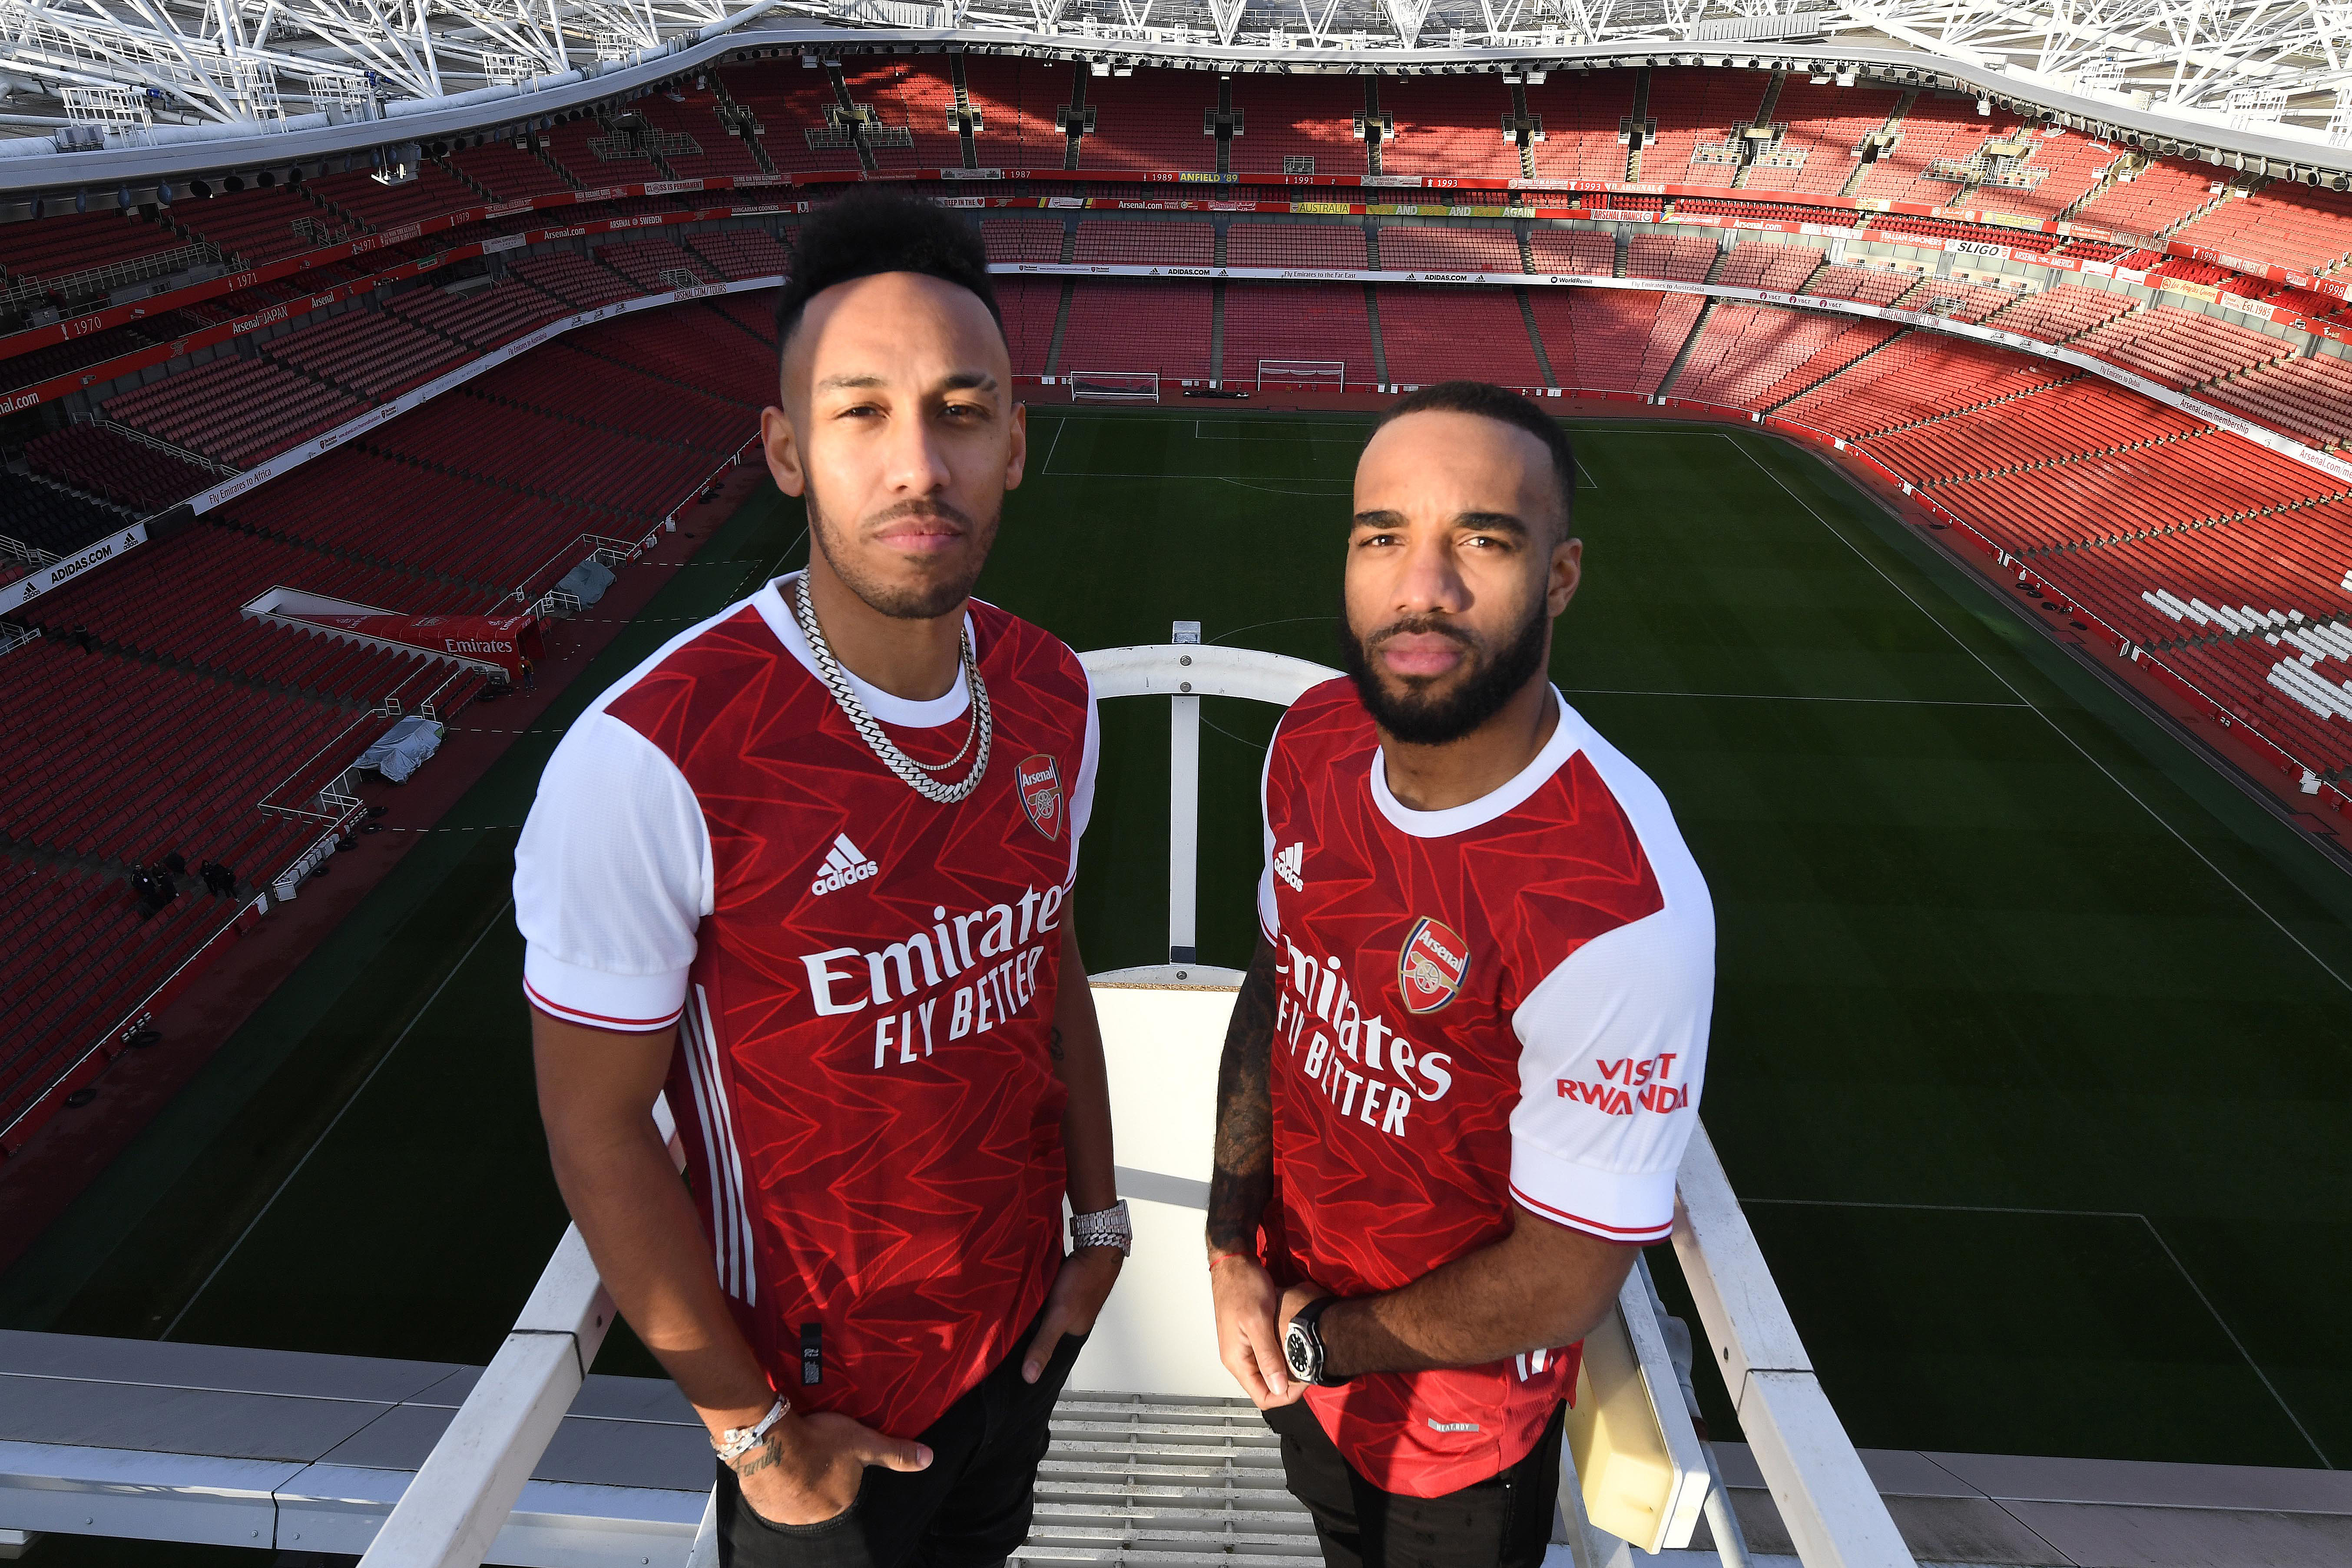 Arsenal Launch New Home Kit For 2020/21 Season